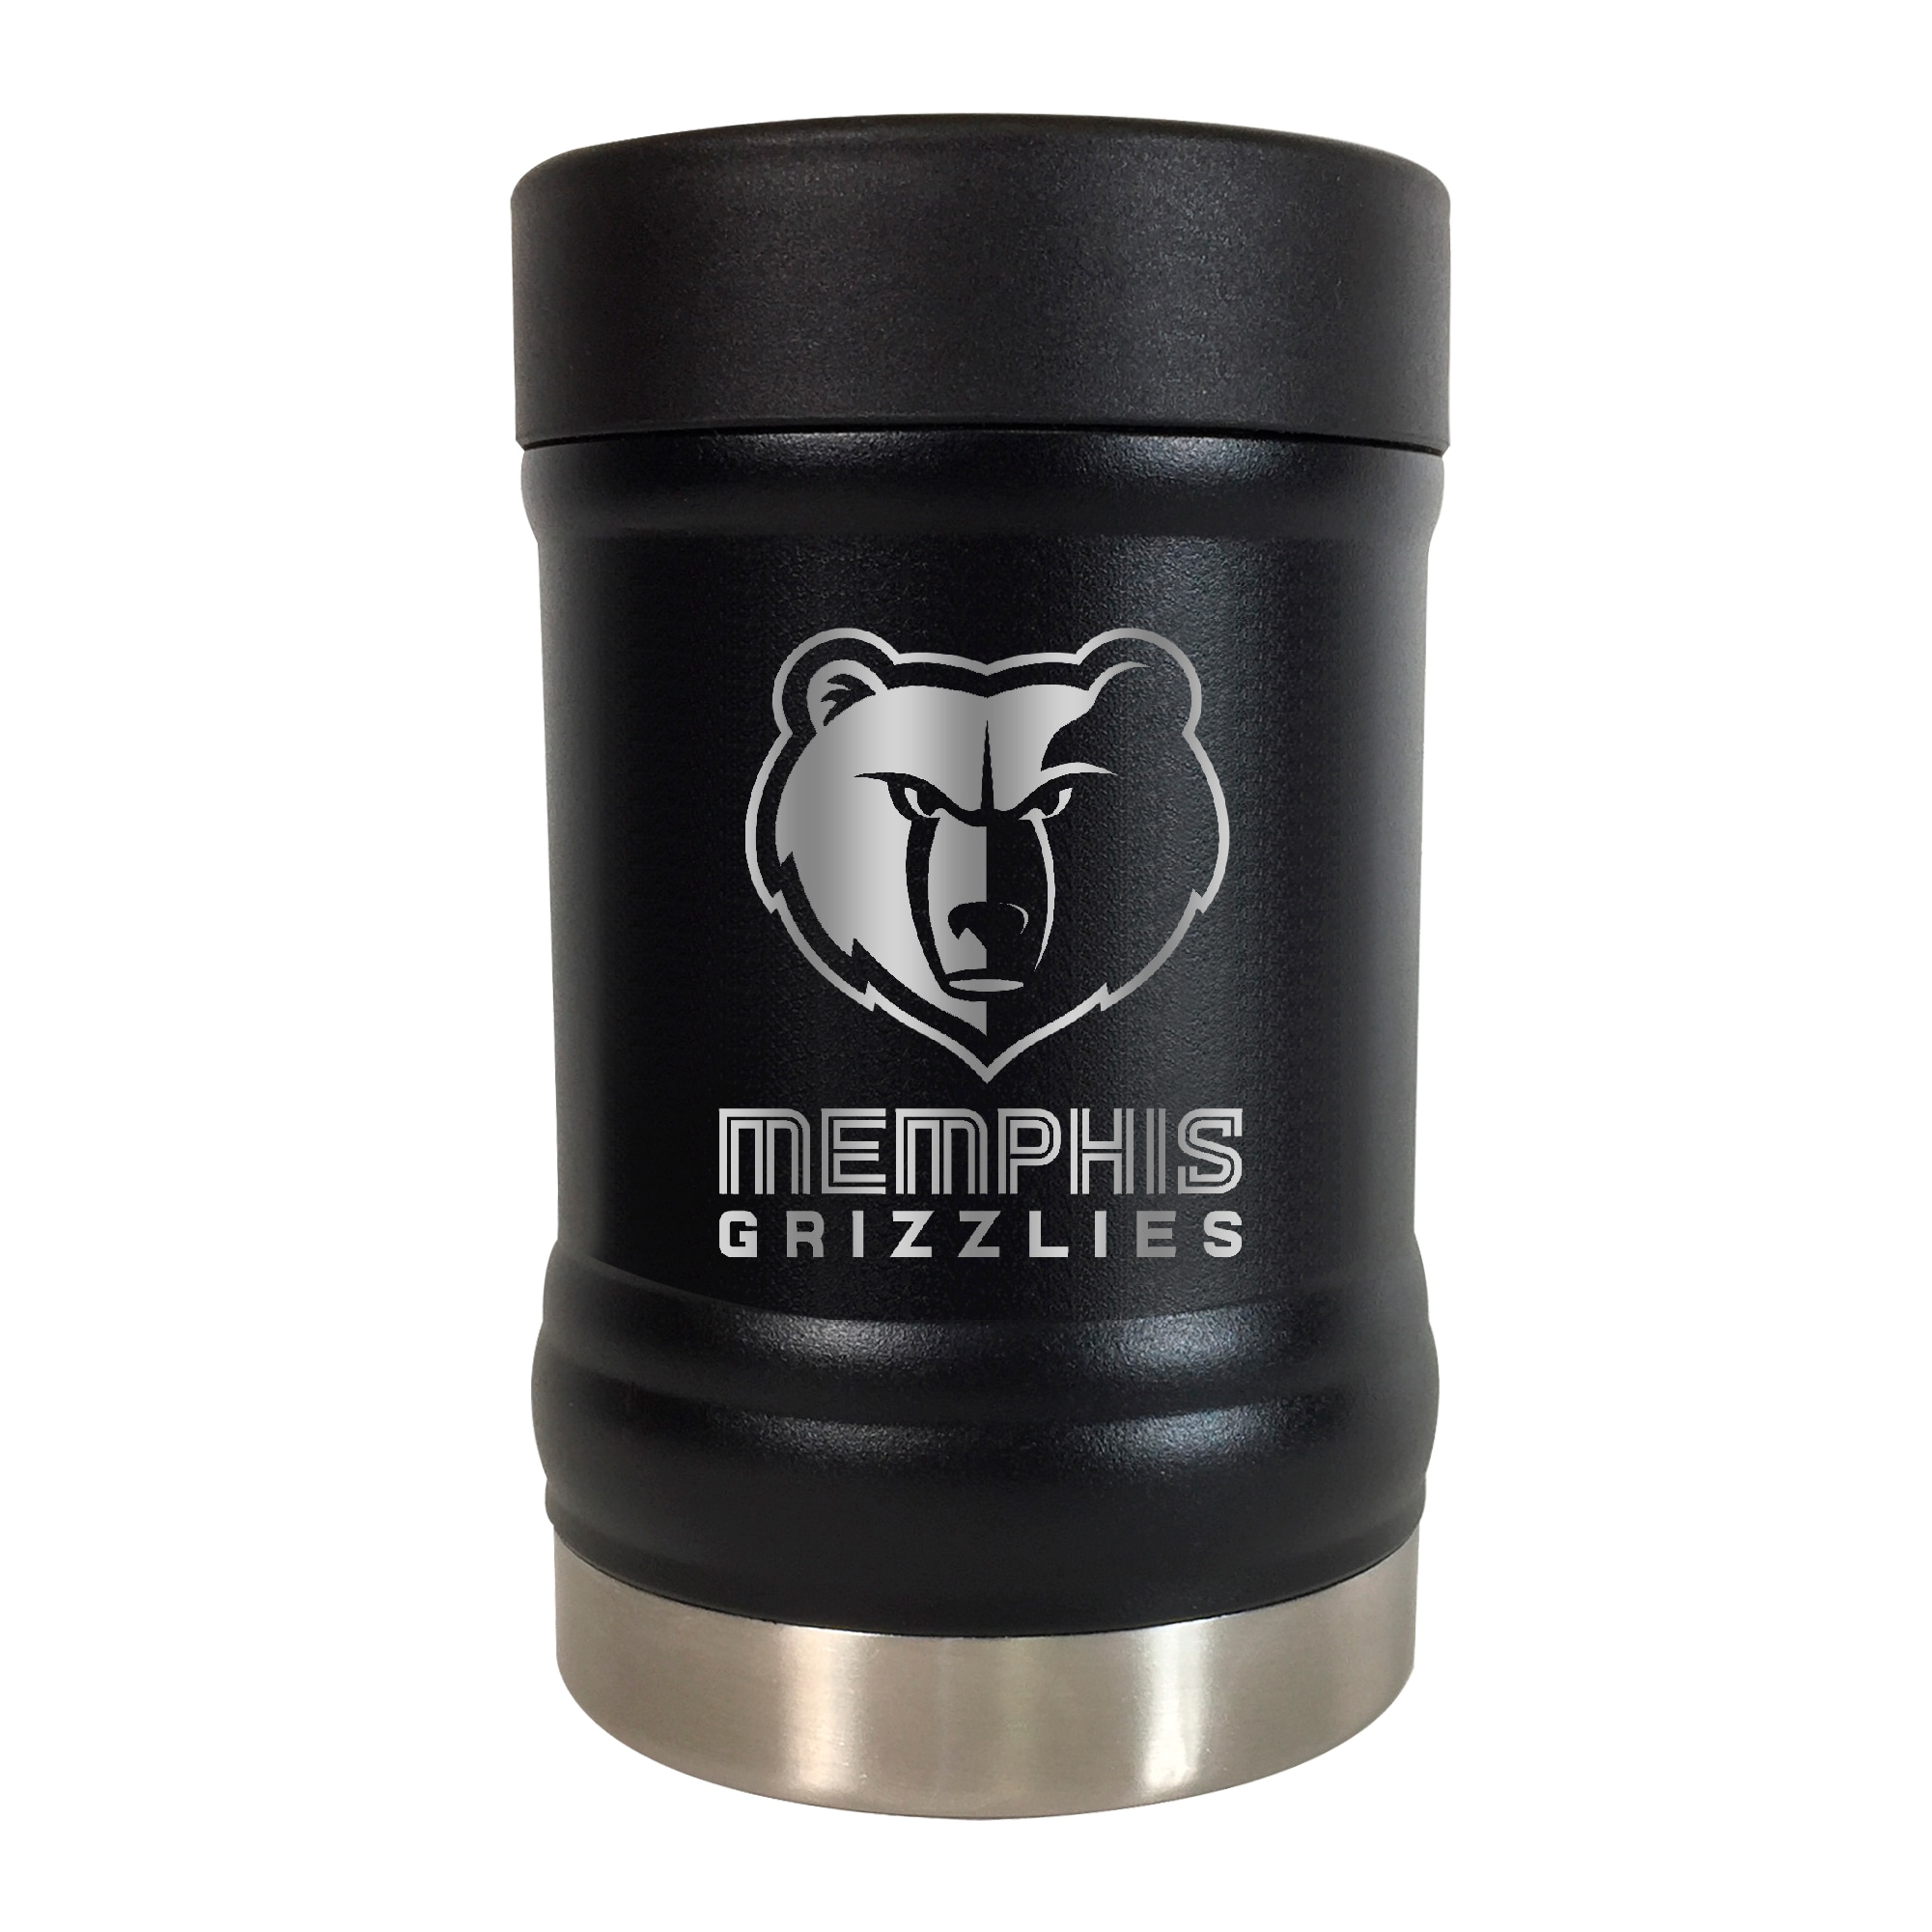 Memphis Grizzlies 12oz. Stealth Can Holder